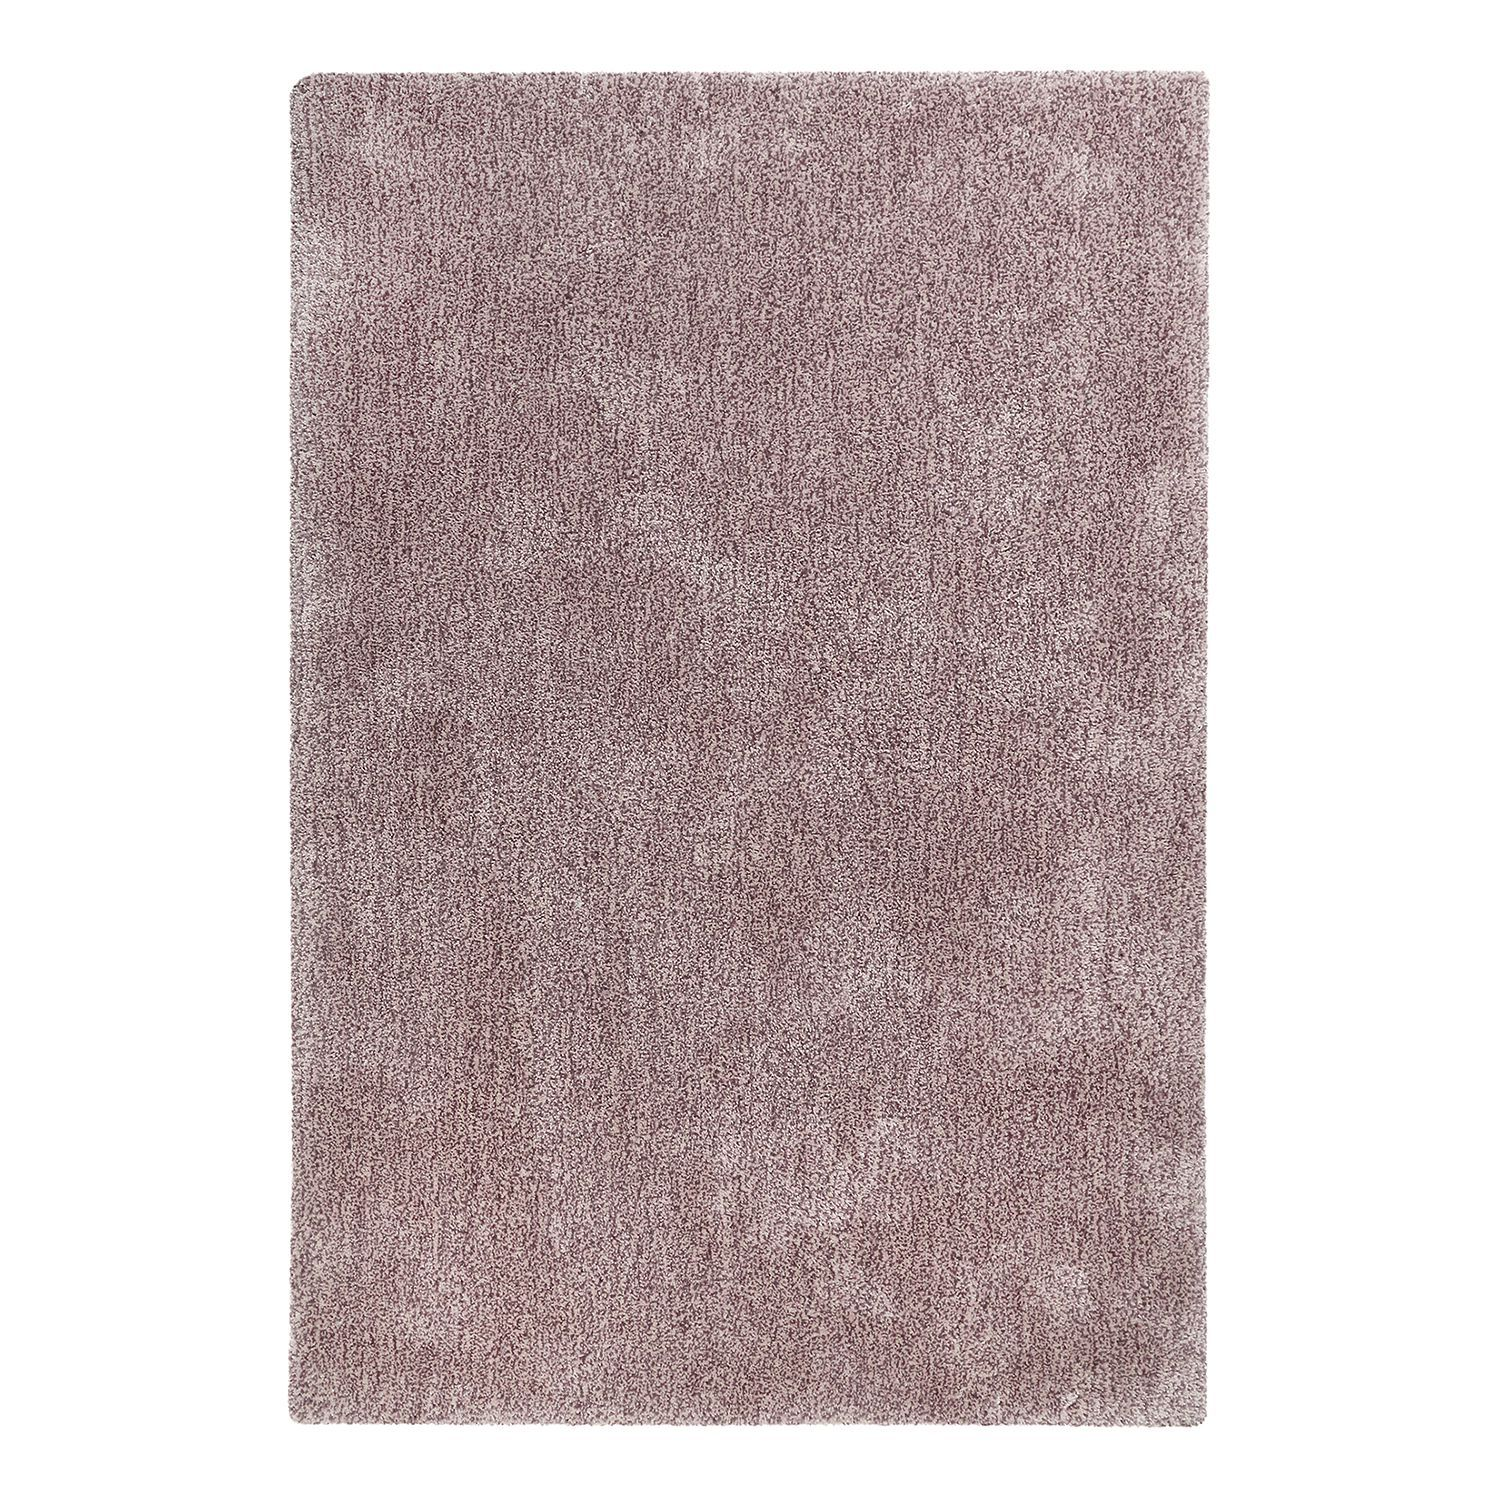 Carpet Relaxx Synthetic Fiber Dusky Pink 200 X 290 Cm Buy Esprit Online At Woonio Carpet Relaxx Synthetic Fibe In 2020 Teppich Teppich Altrosa Teppich Design